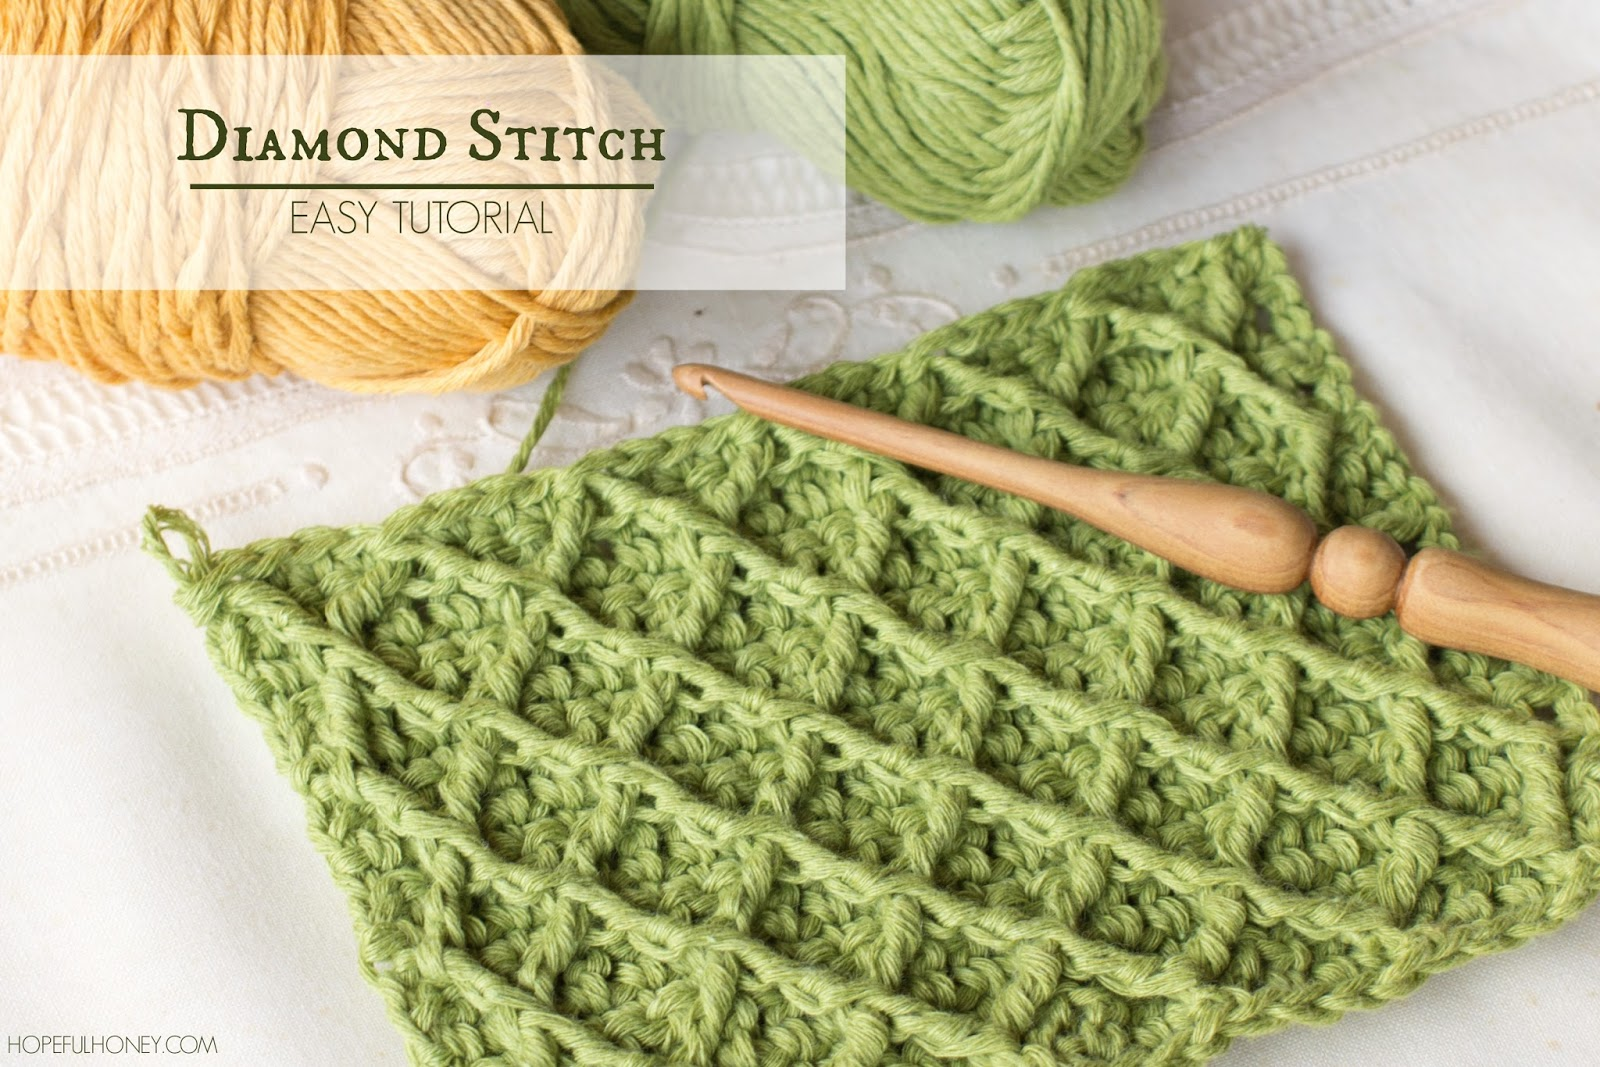 Crochet Stitches Gallery : ... , Crochet, Create: How To: Crochet The Diamond Stitch - Easy Tutorial